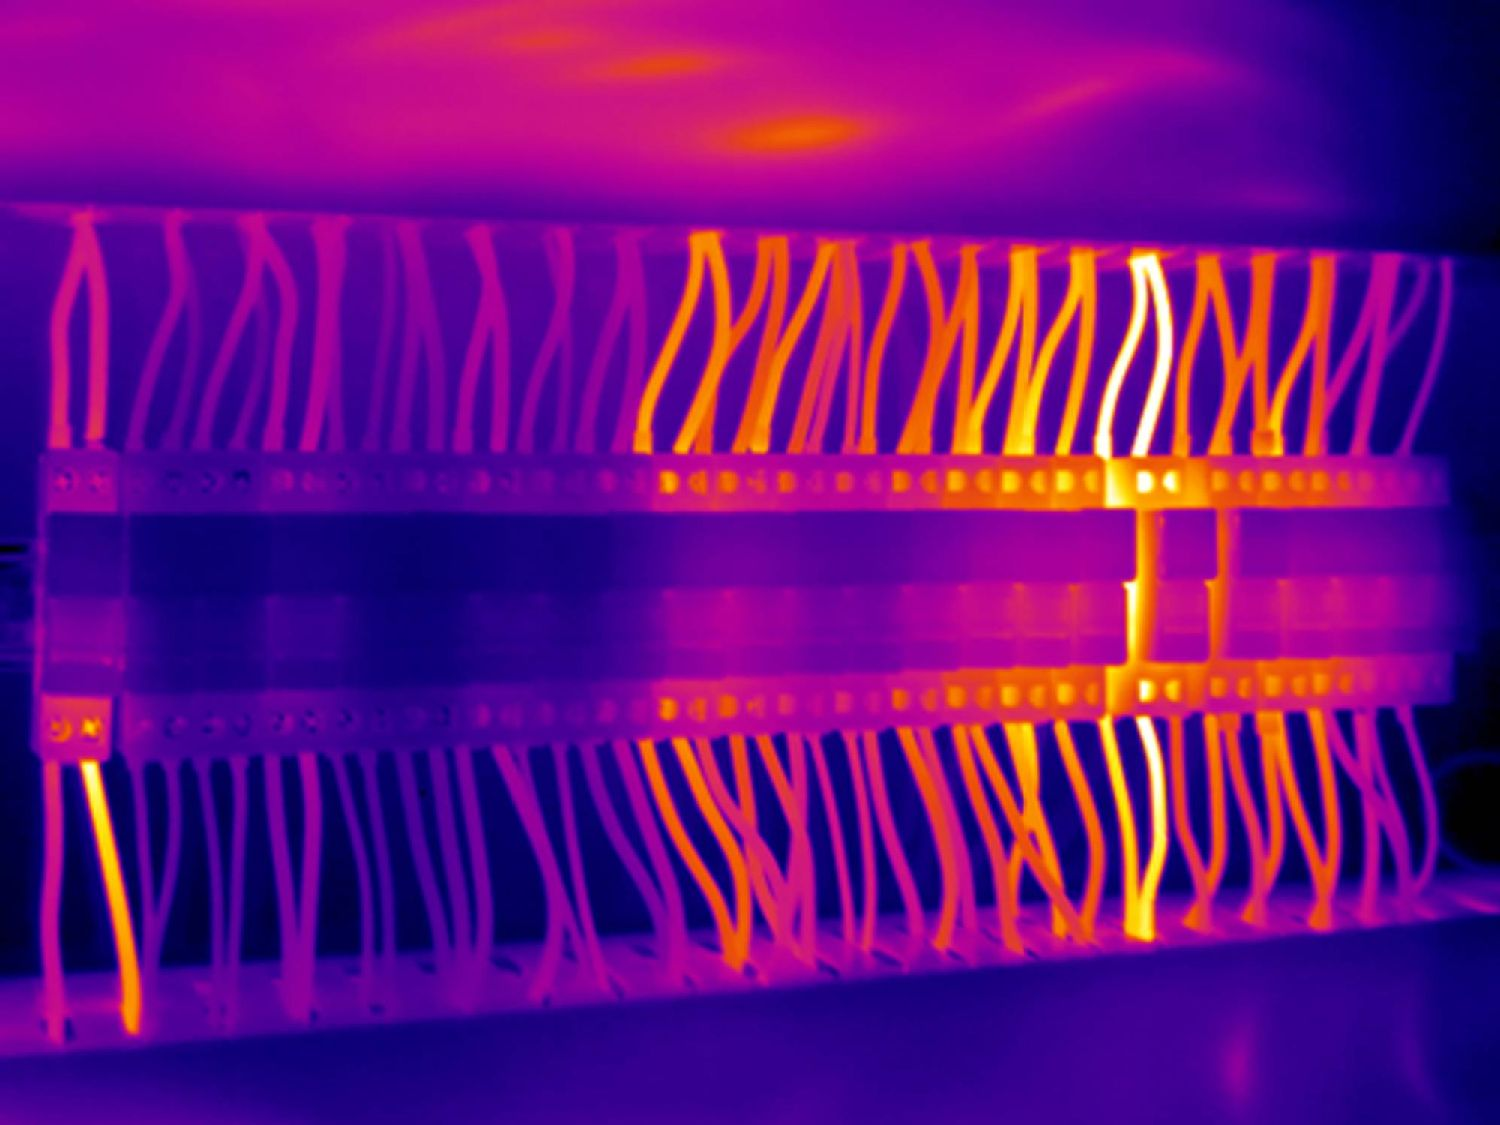 thermography-electronic-2000x1500.jpg